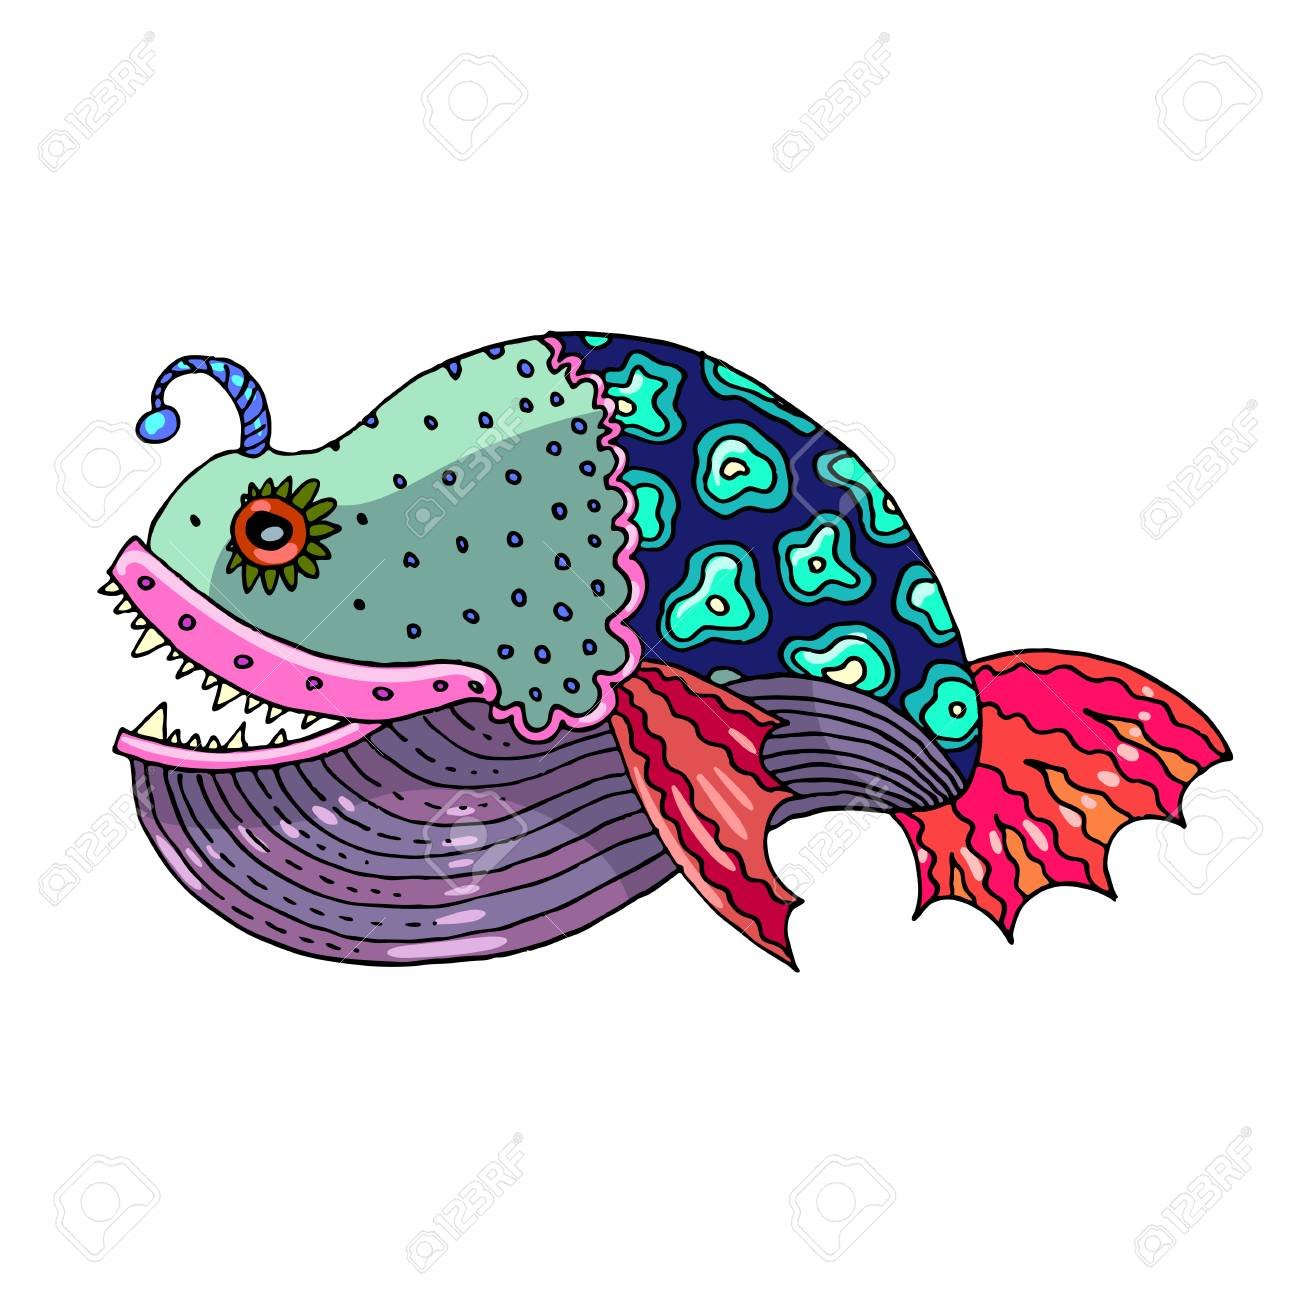 Cartoon comics sea or river fish - vector hand drawing isolated linear illustration in sketch style - 90968190